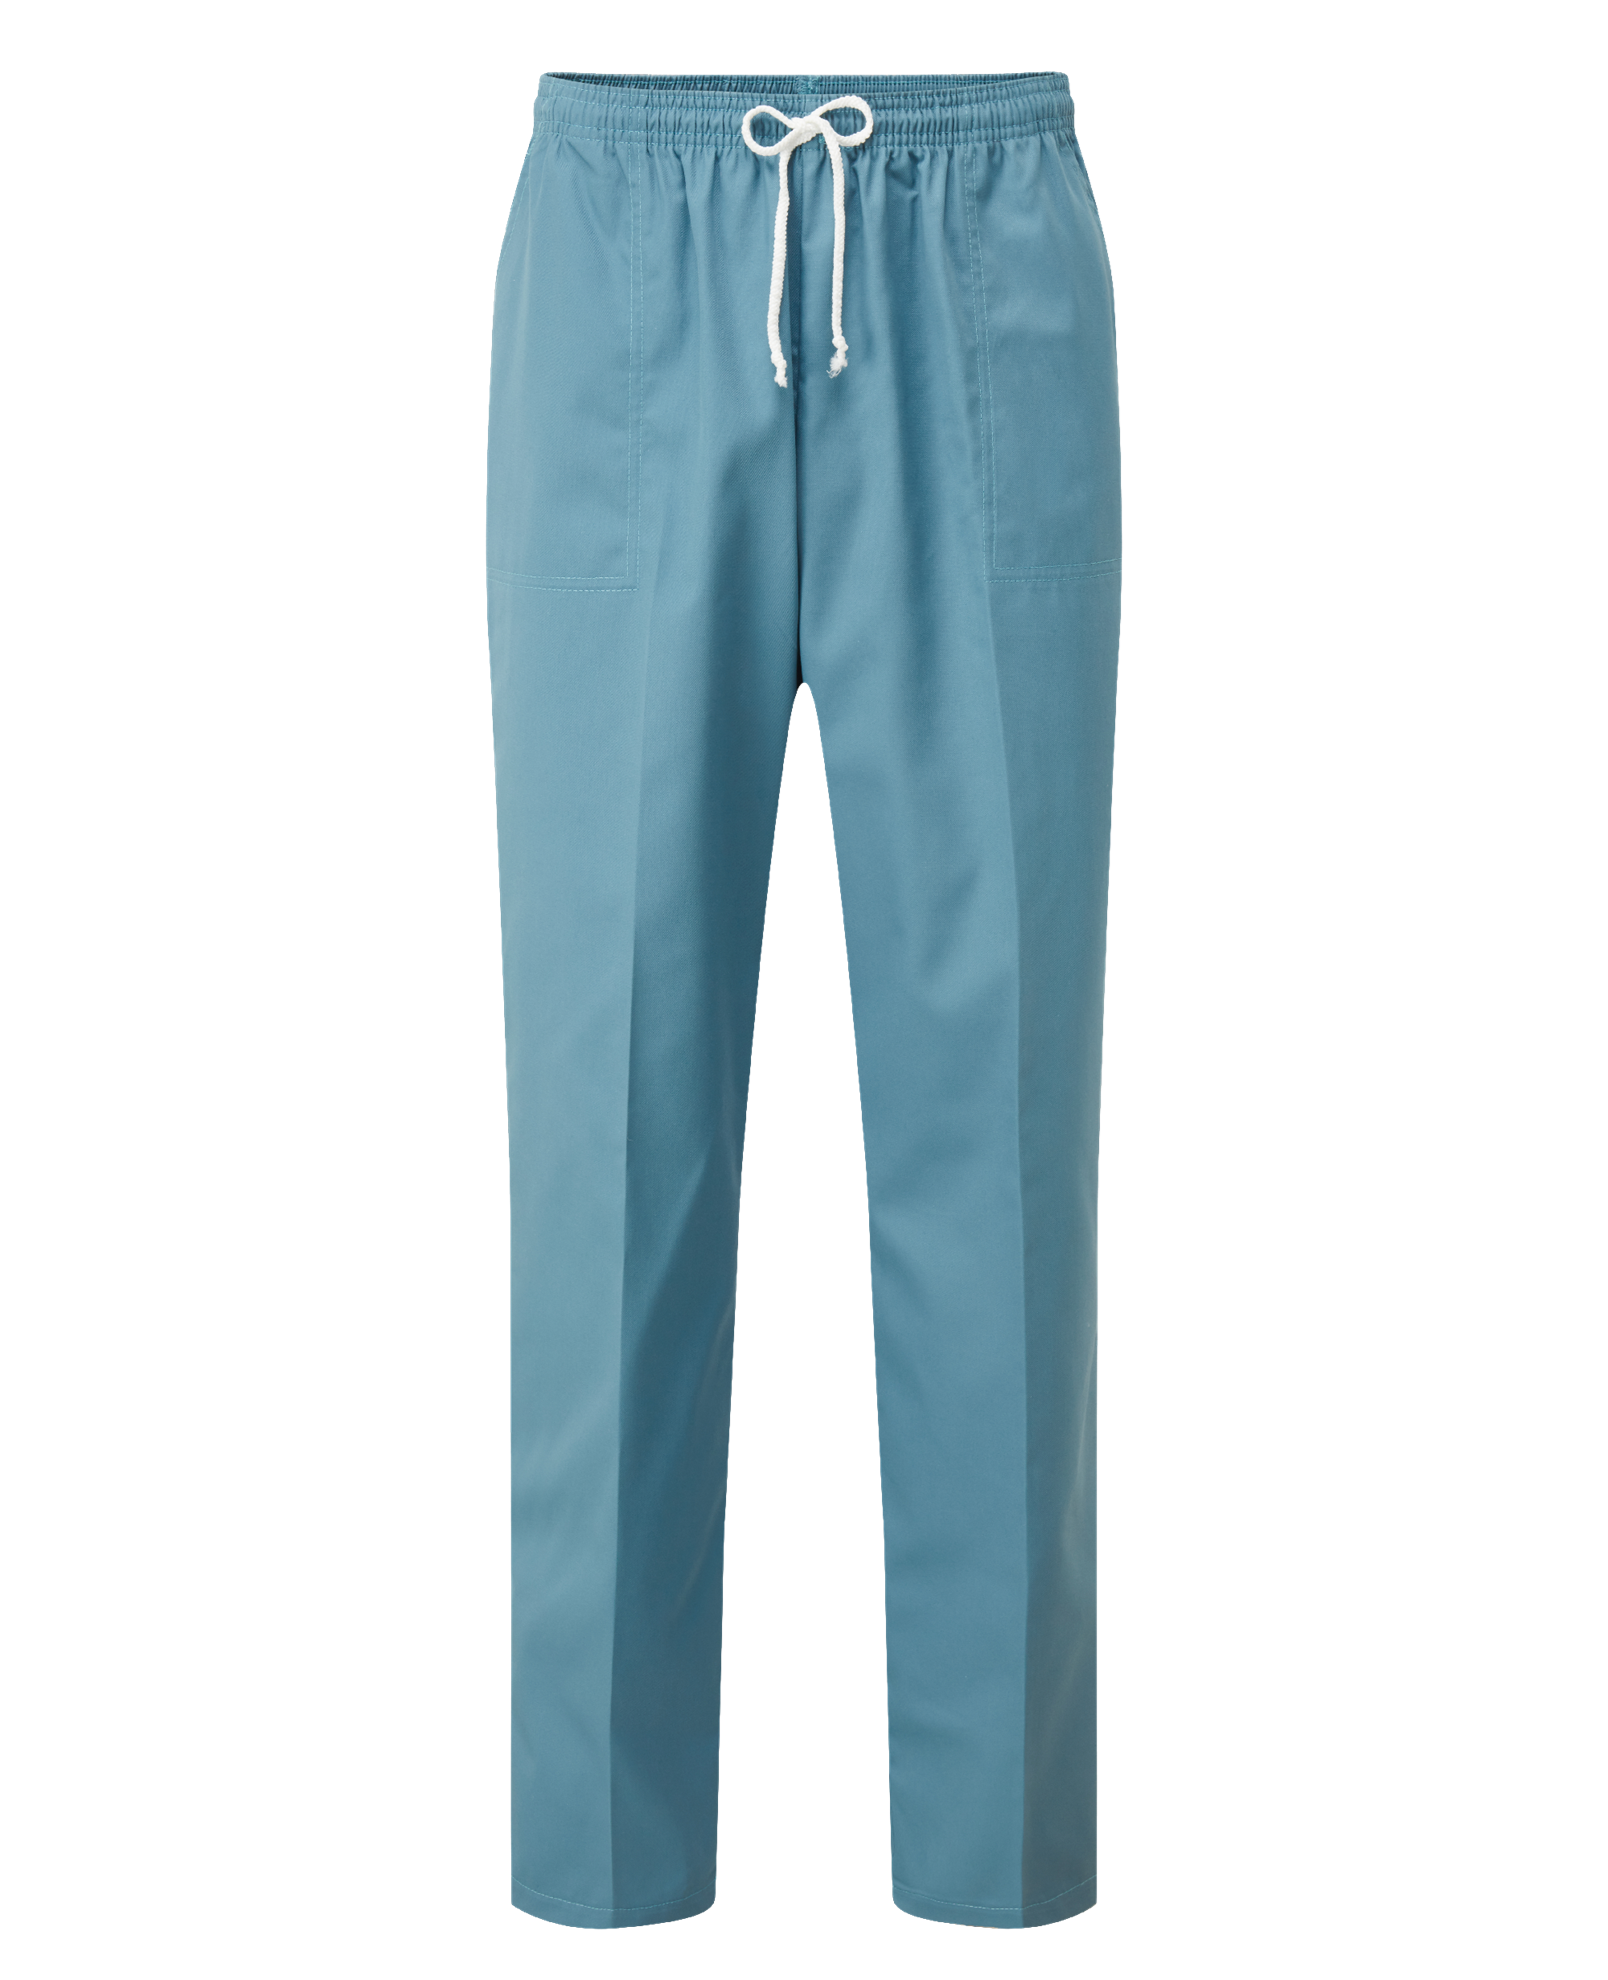 Picture of Unisex Smart Scrub Trousers - Turquoise